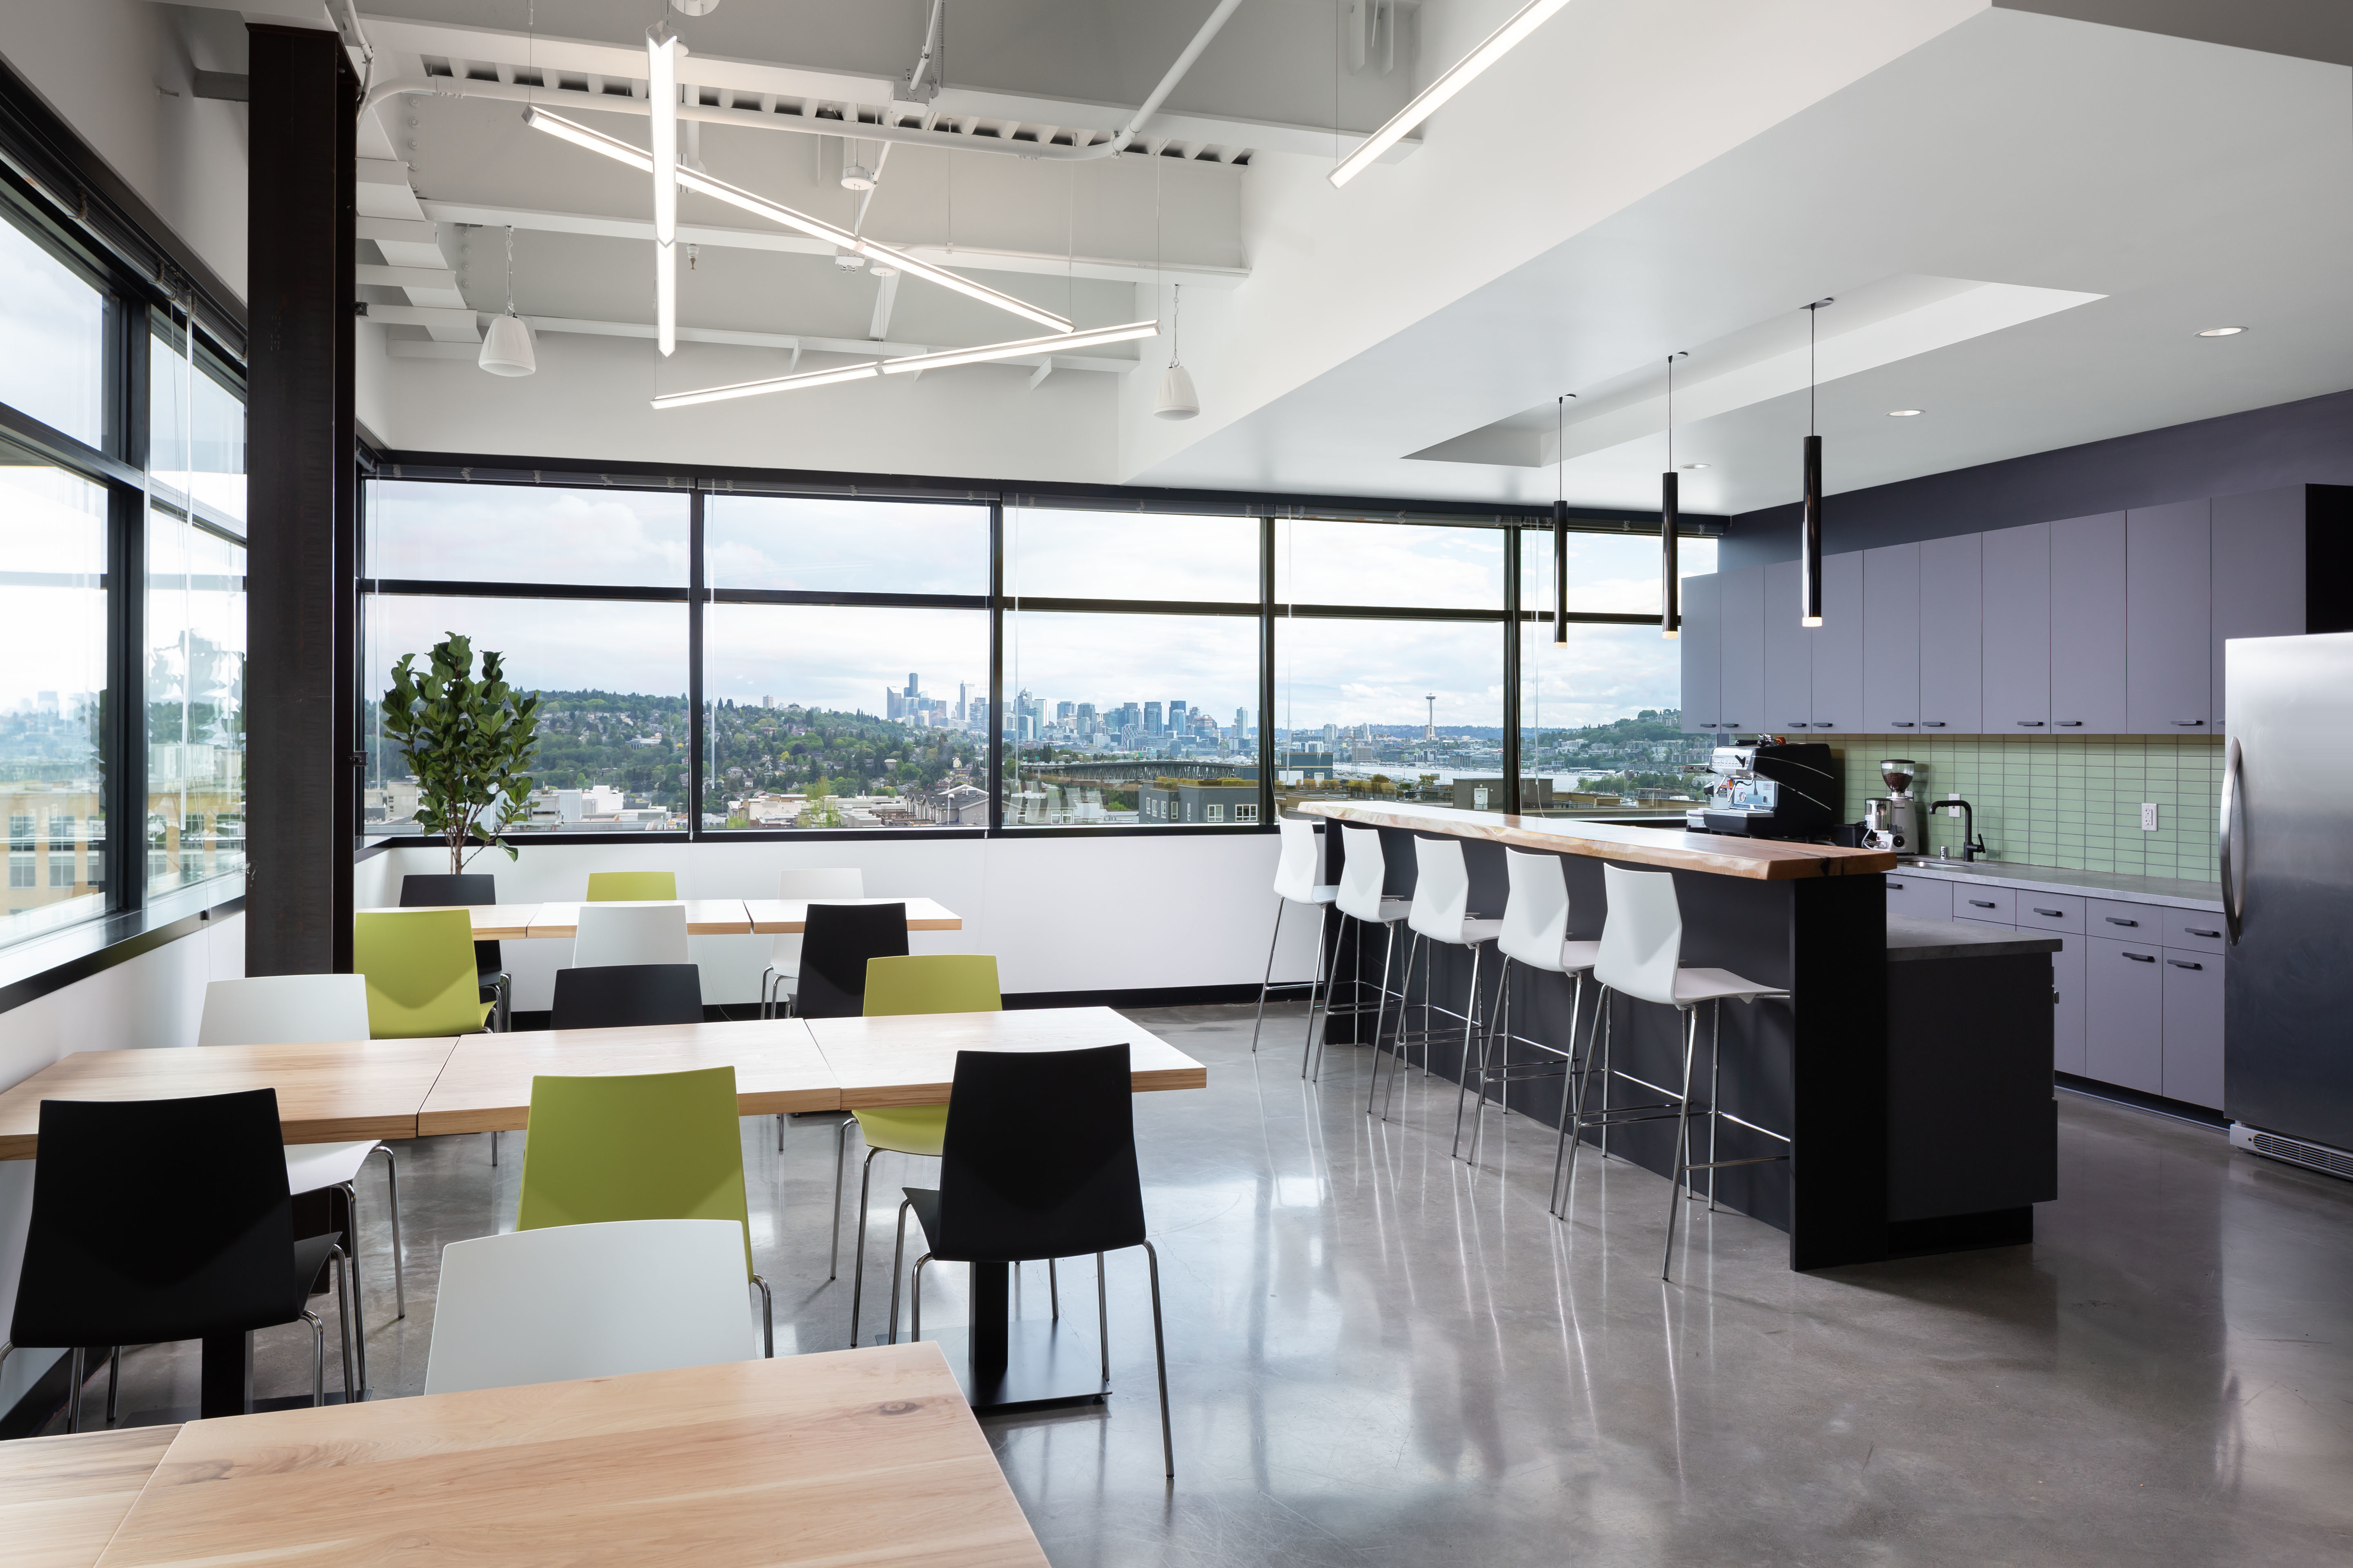 cafeteria area with chairs